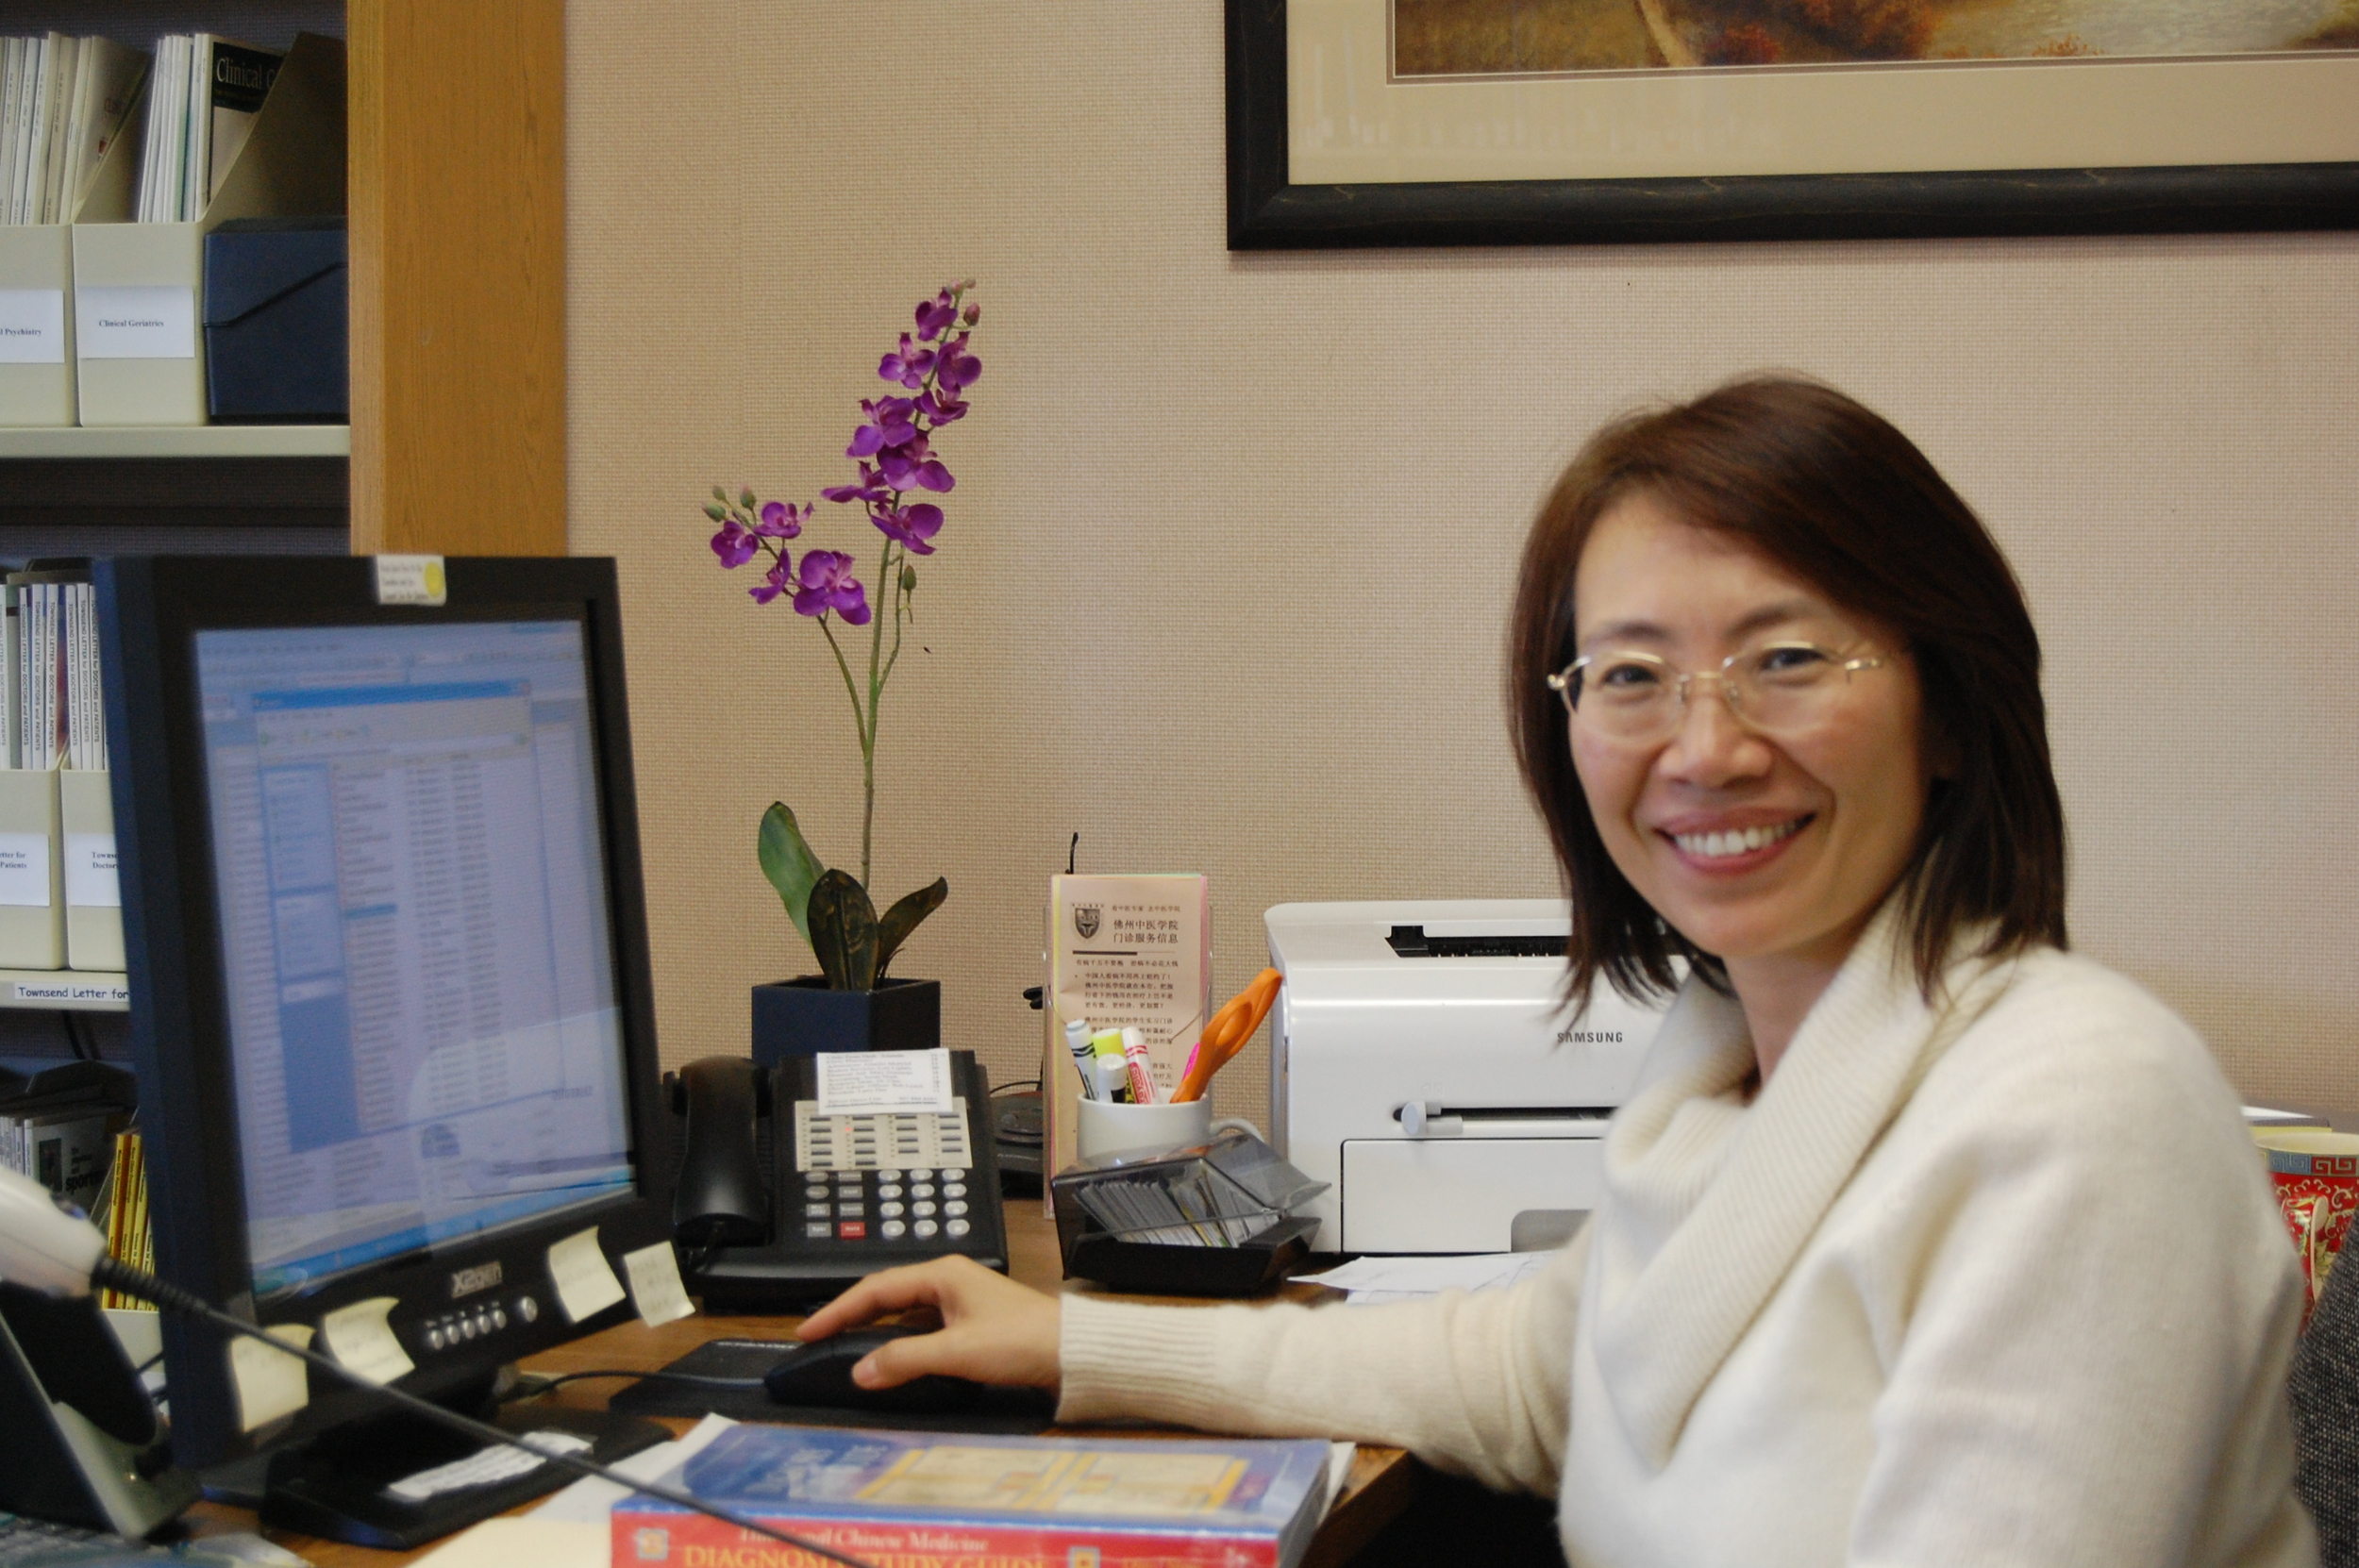 Neiping Peng, Director of Learning Resources